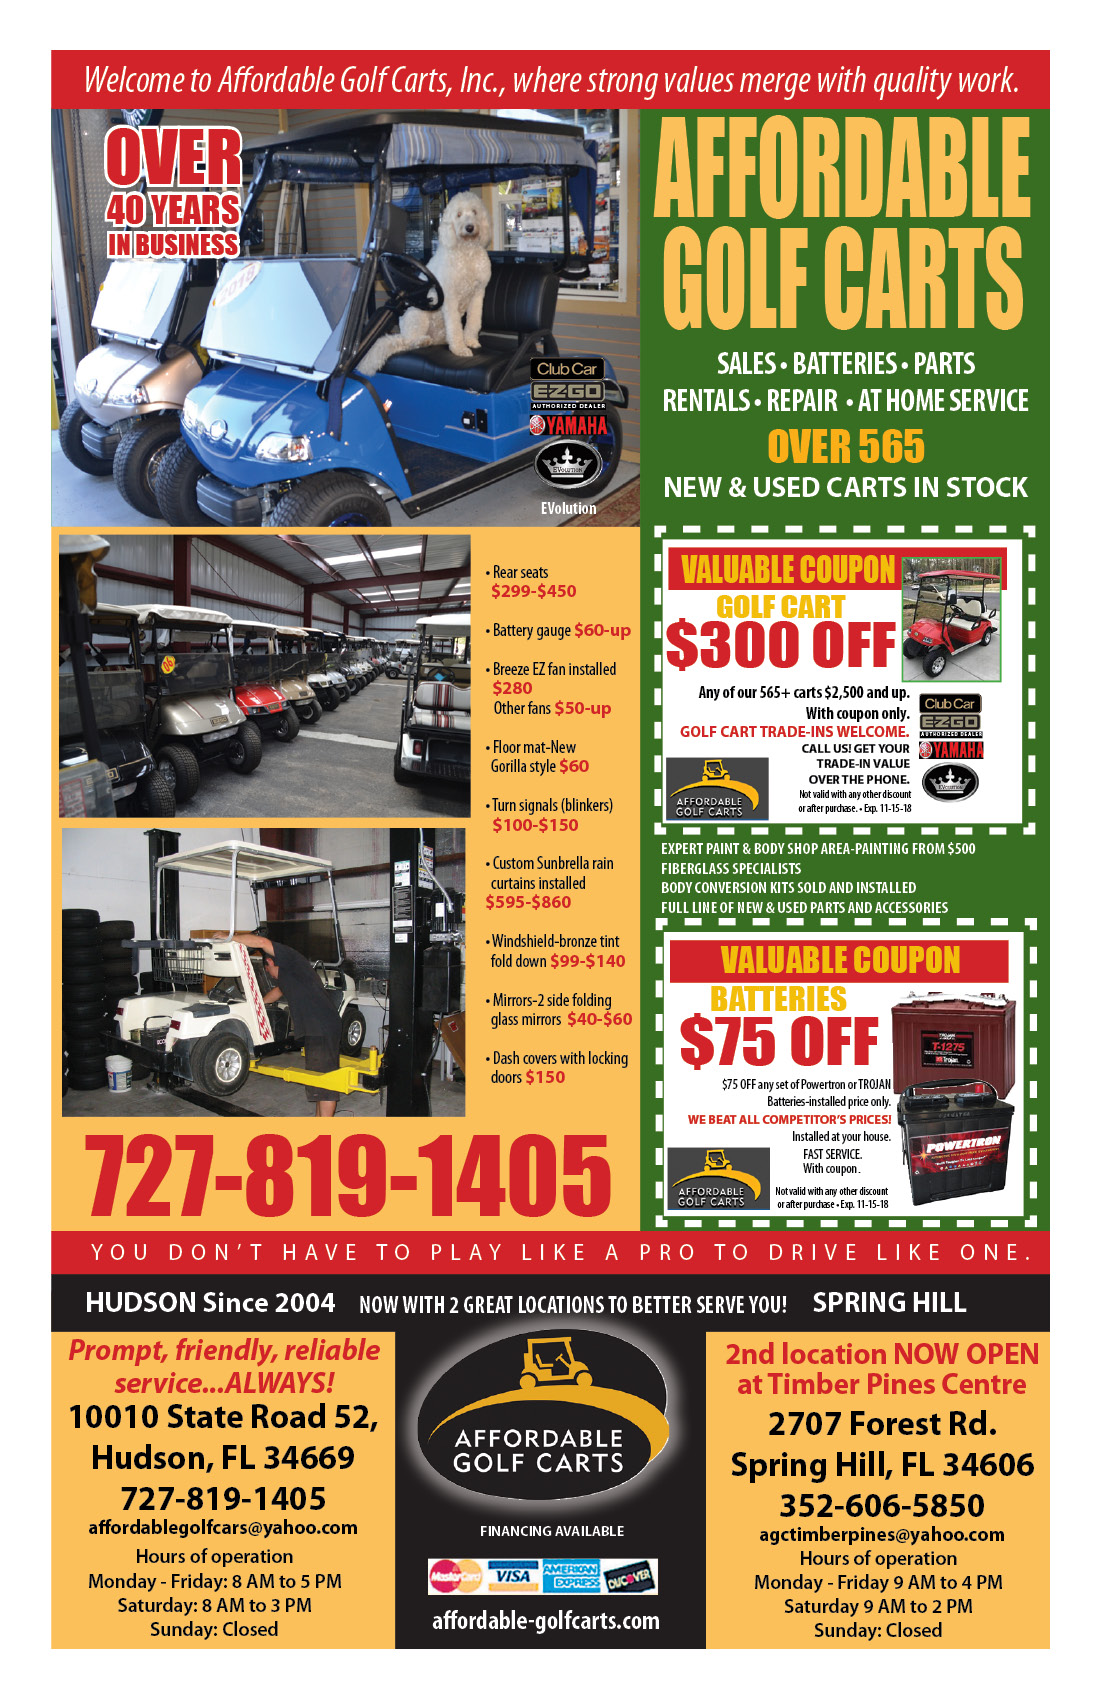 2018 October Boomerz-Magazine Page 28 Add from Affordable-Golf-Carts